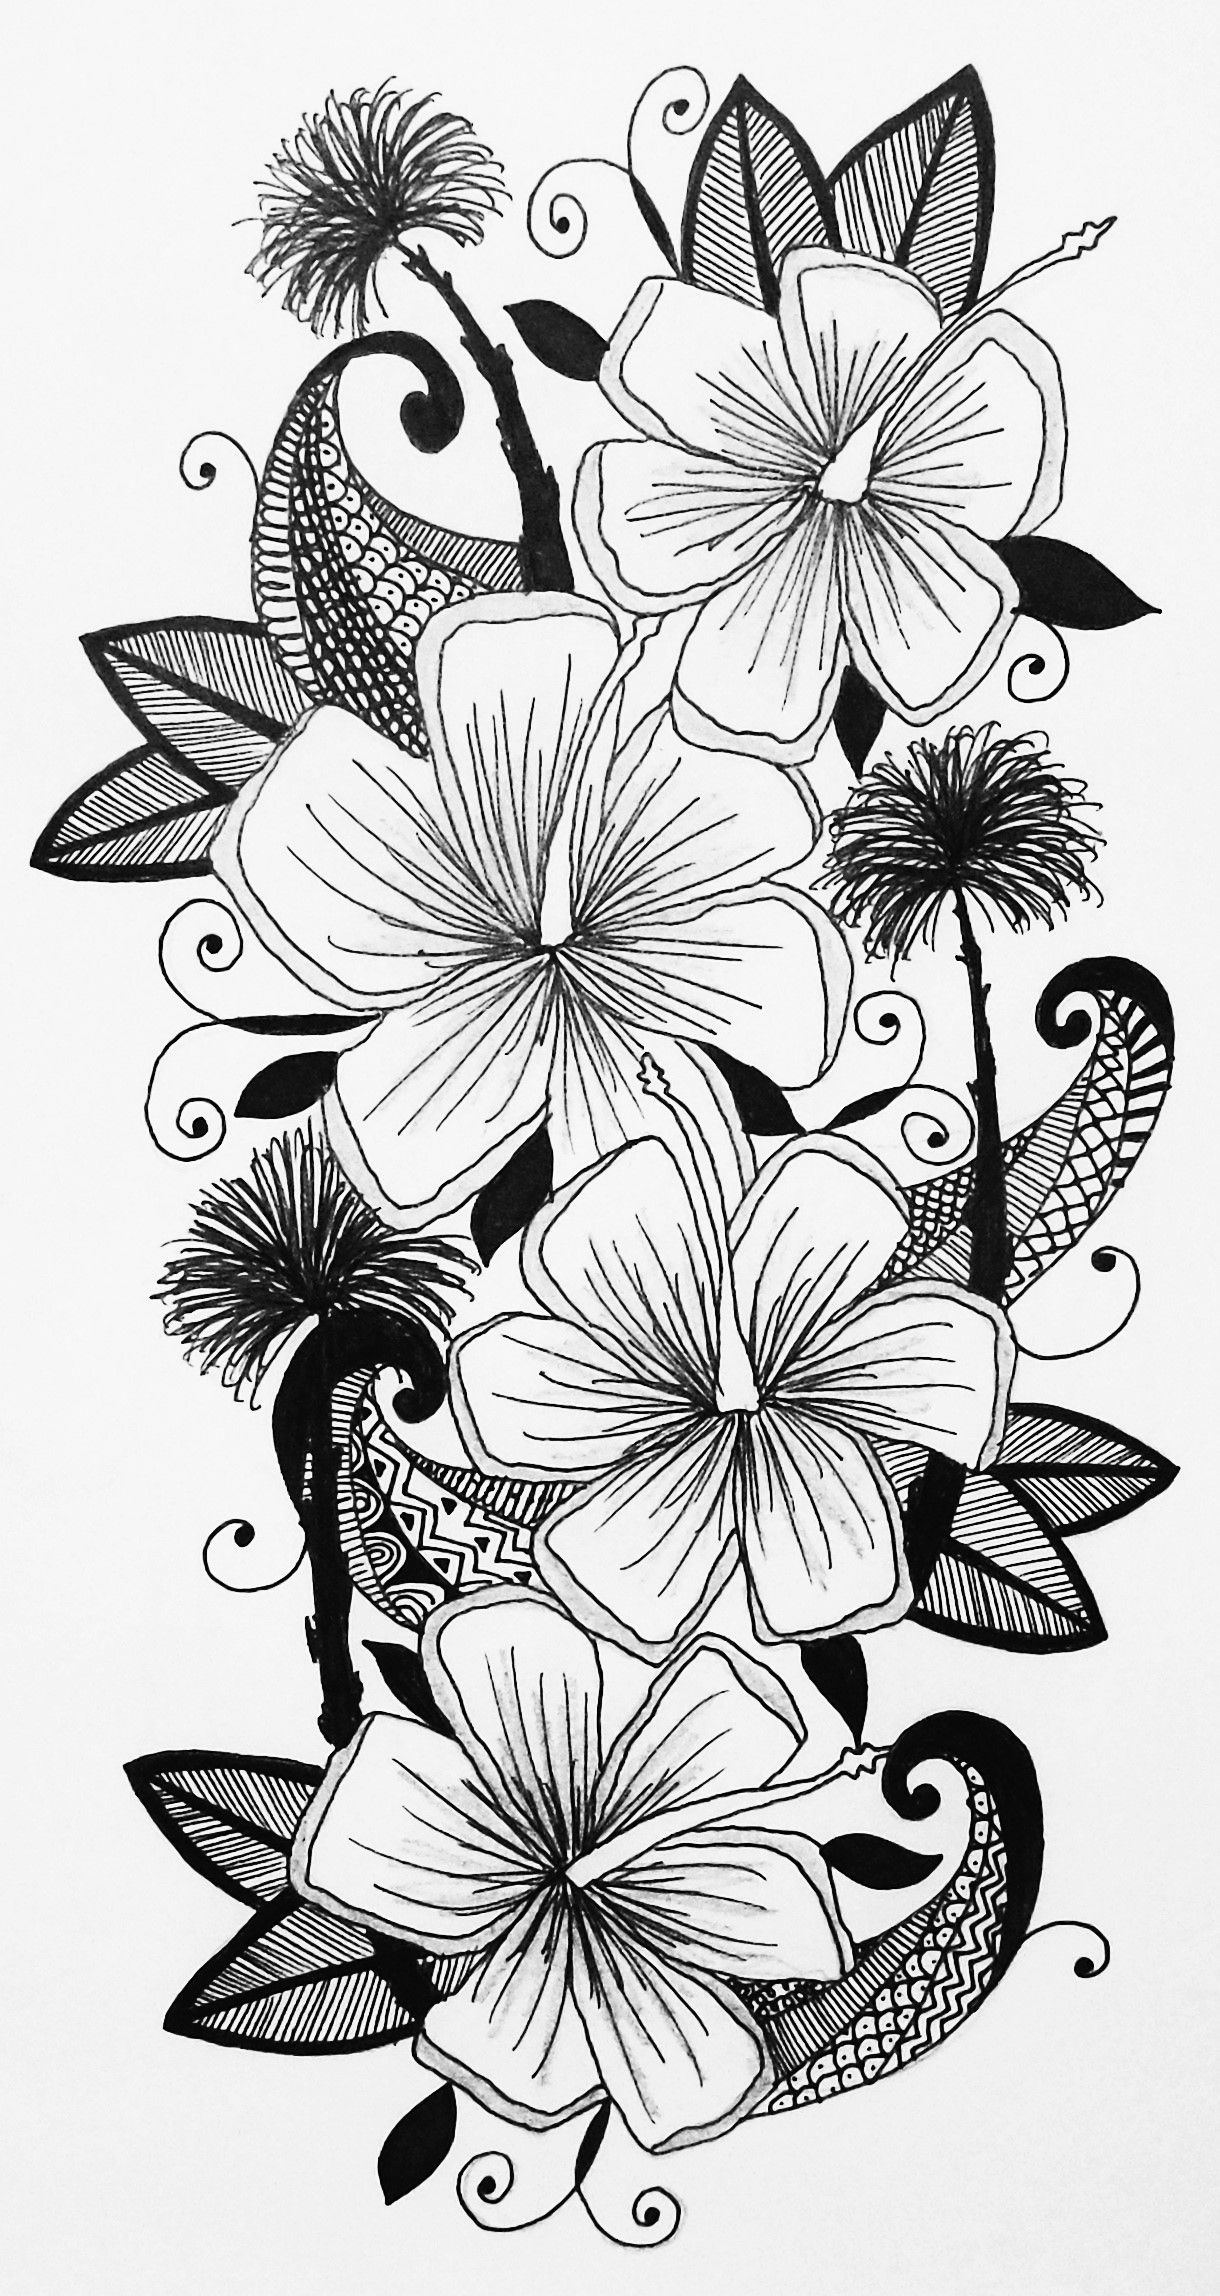 Hawaiian inspired floral hibiscus flower palm tree crashing wave hawaiian inspired floral hibiscus flower palm tree crashing wave tattoo design illustration izmirmasajfo